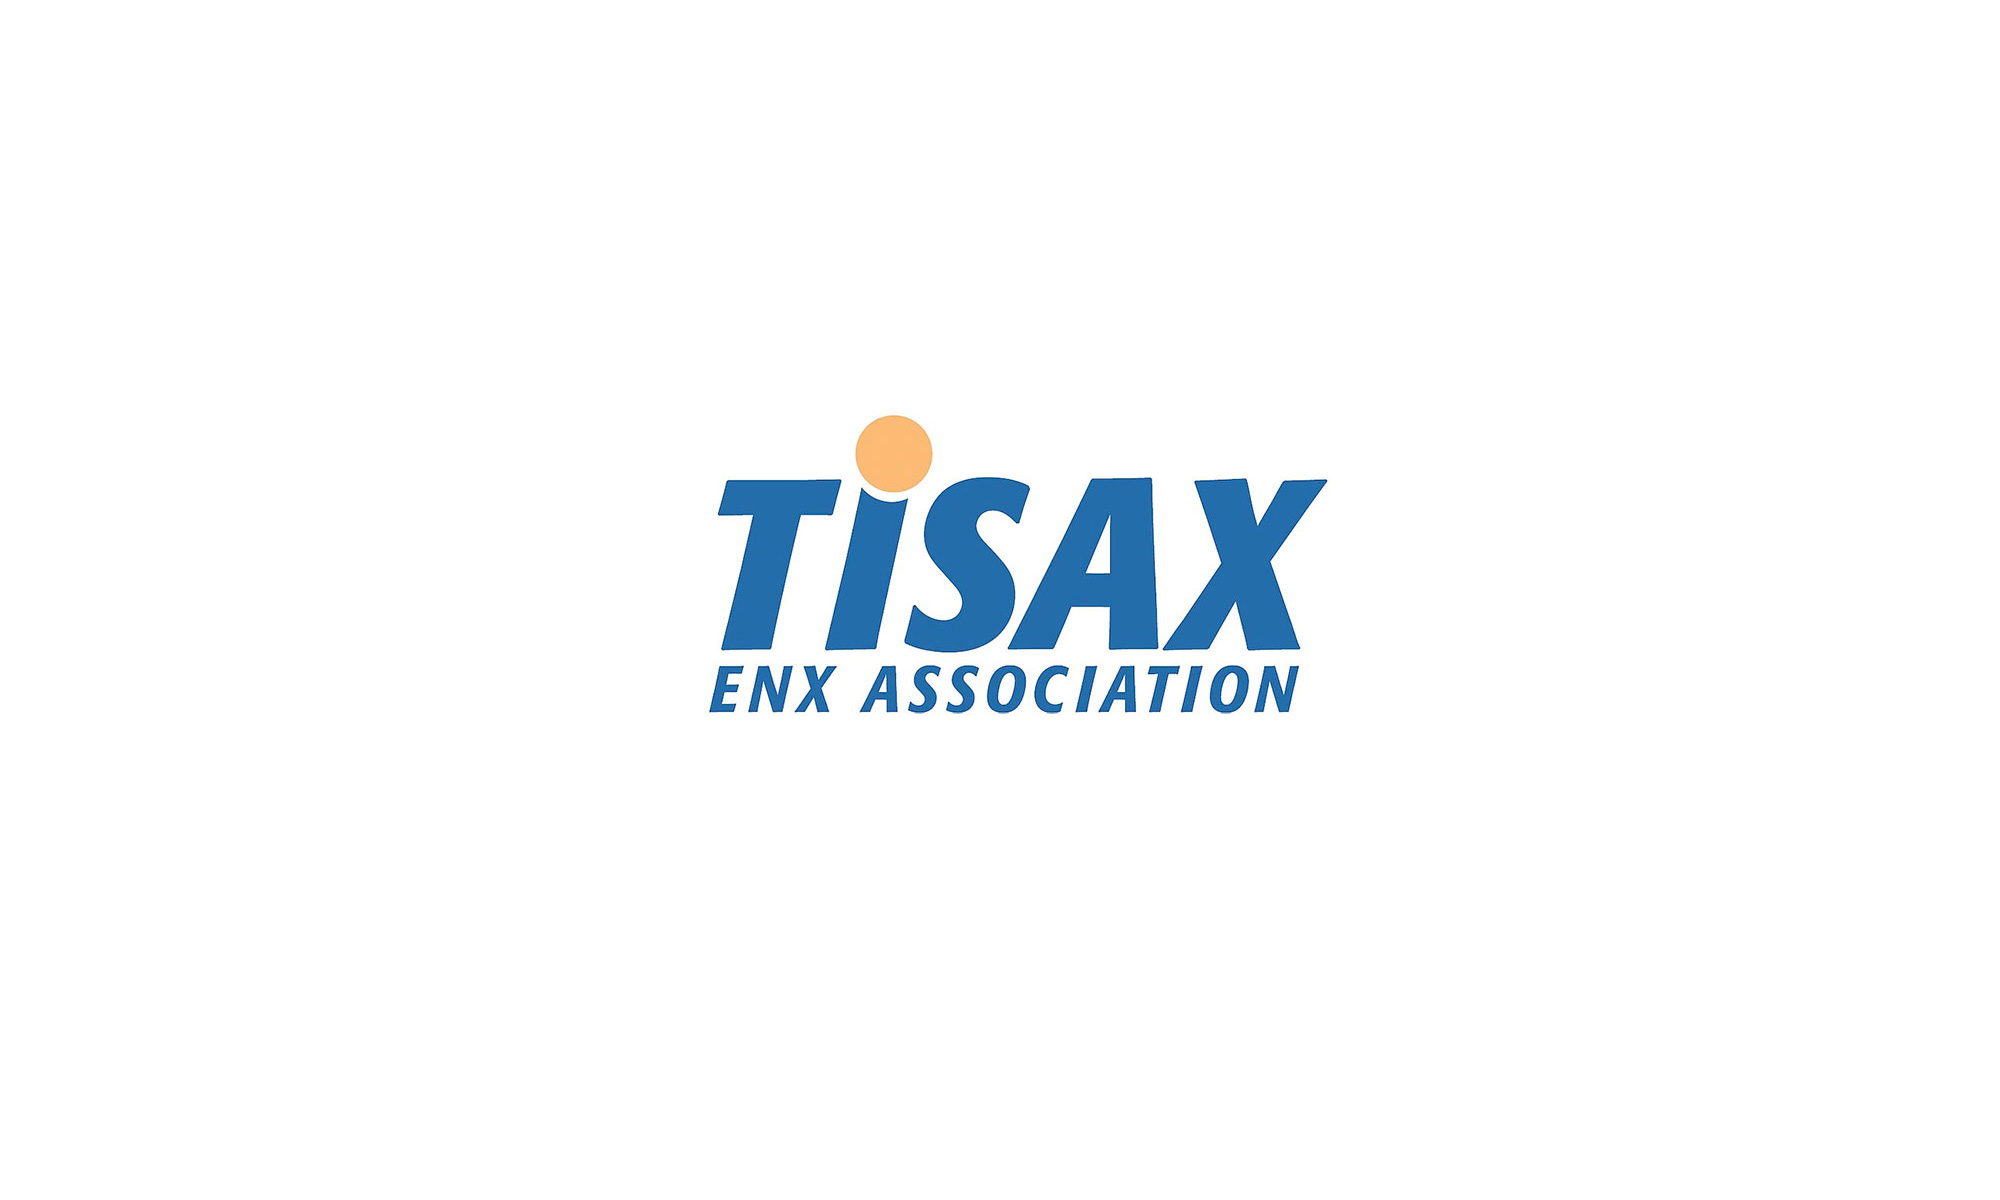 TISAX - certification successfully passed.